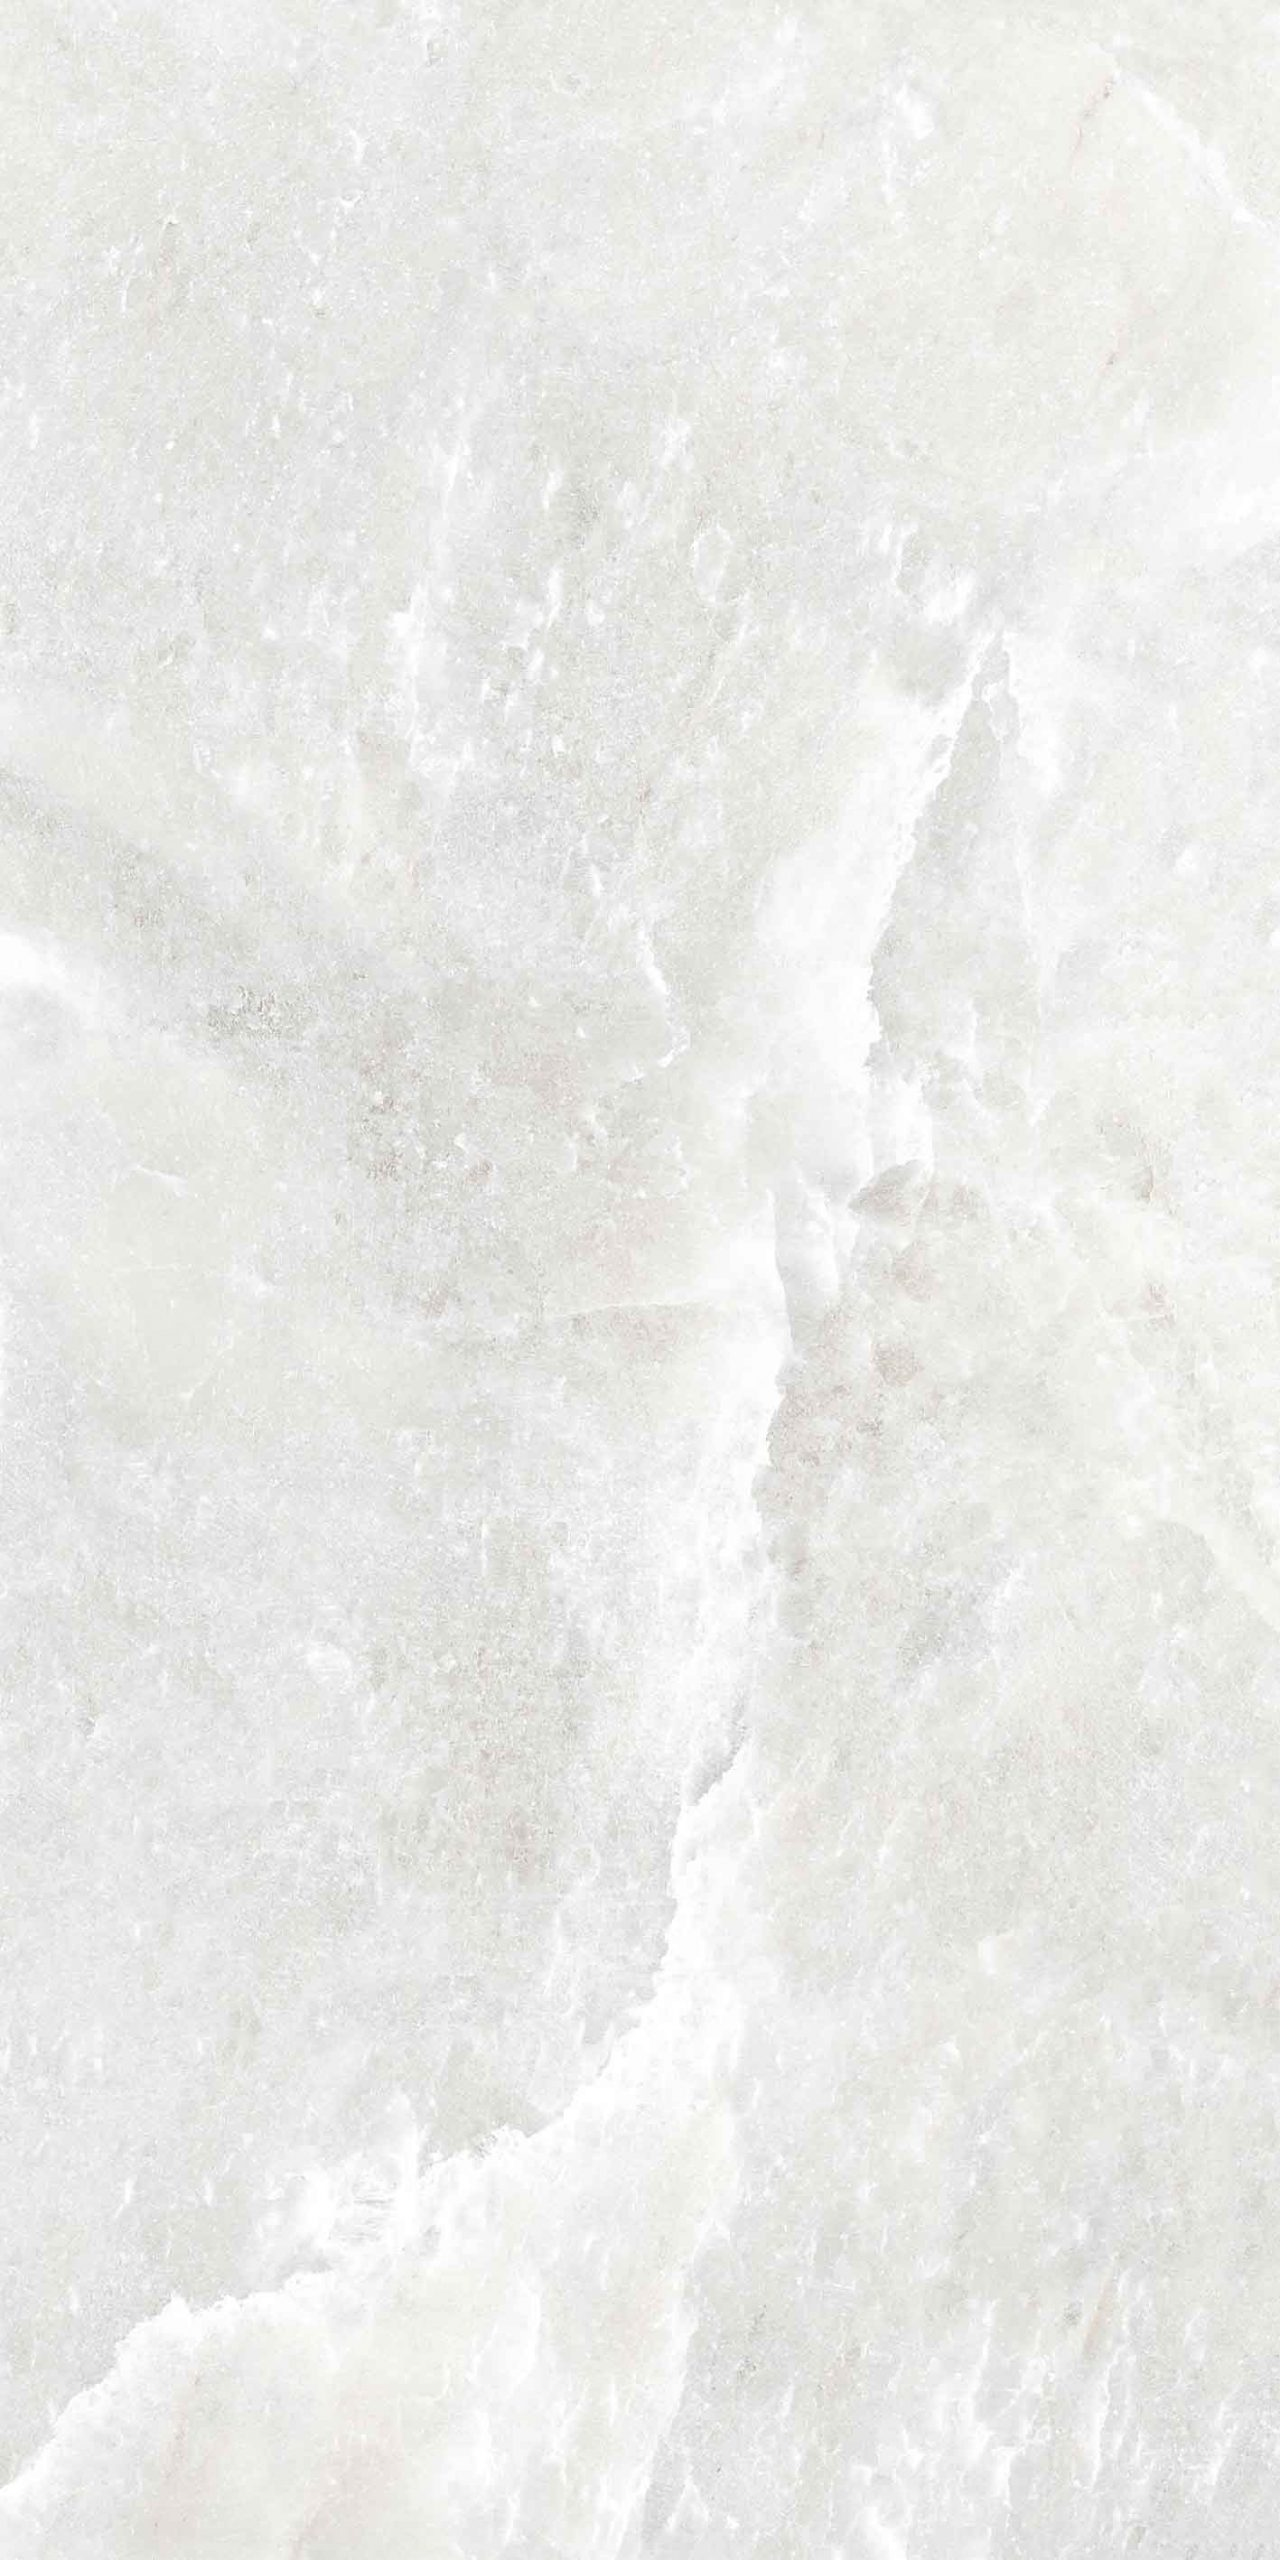 Rock Salt of Cerim White Gold Matte 6mm 120 x 240